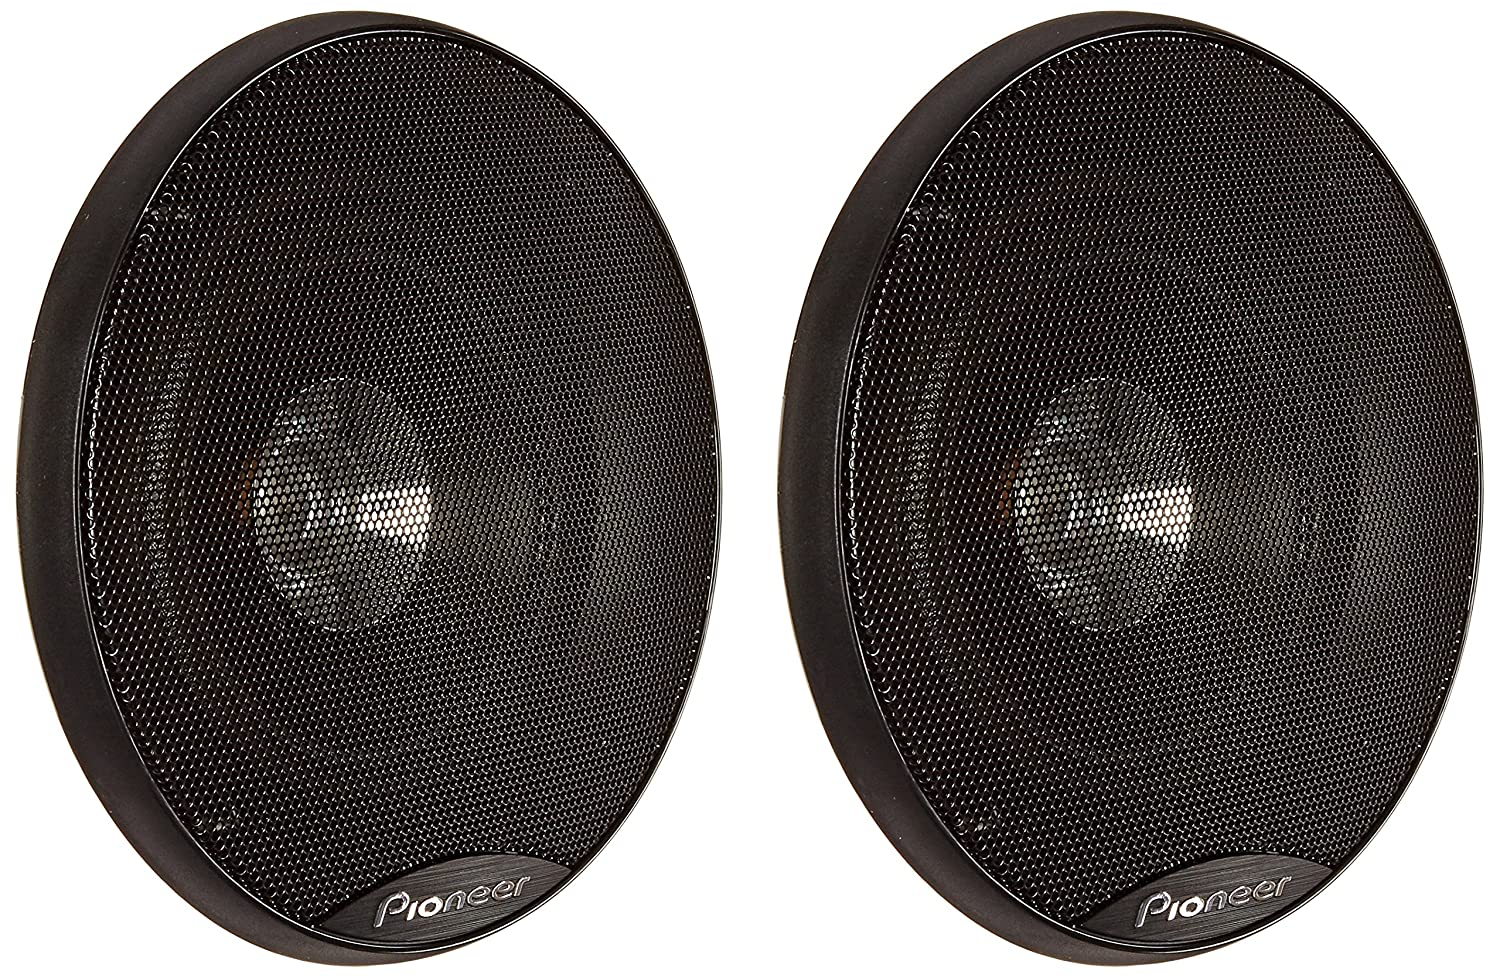 Amazon.com: Pioneer TS-G1015R Dual Cone 4-Inch 190 W 1-Way Speakers-Set of 1: Car Electronics